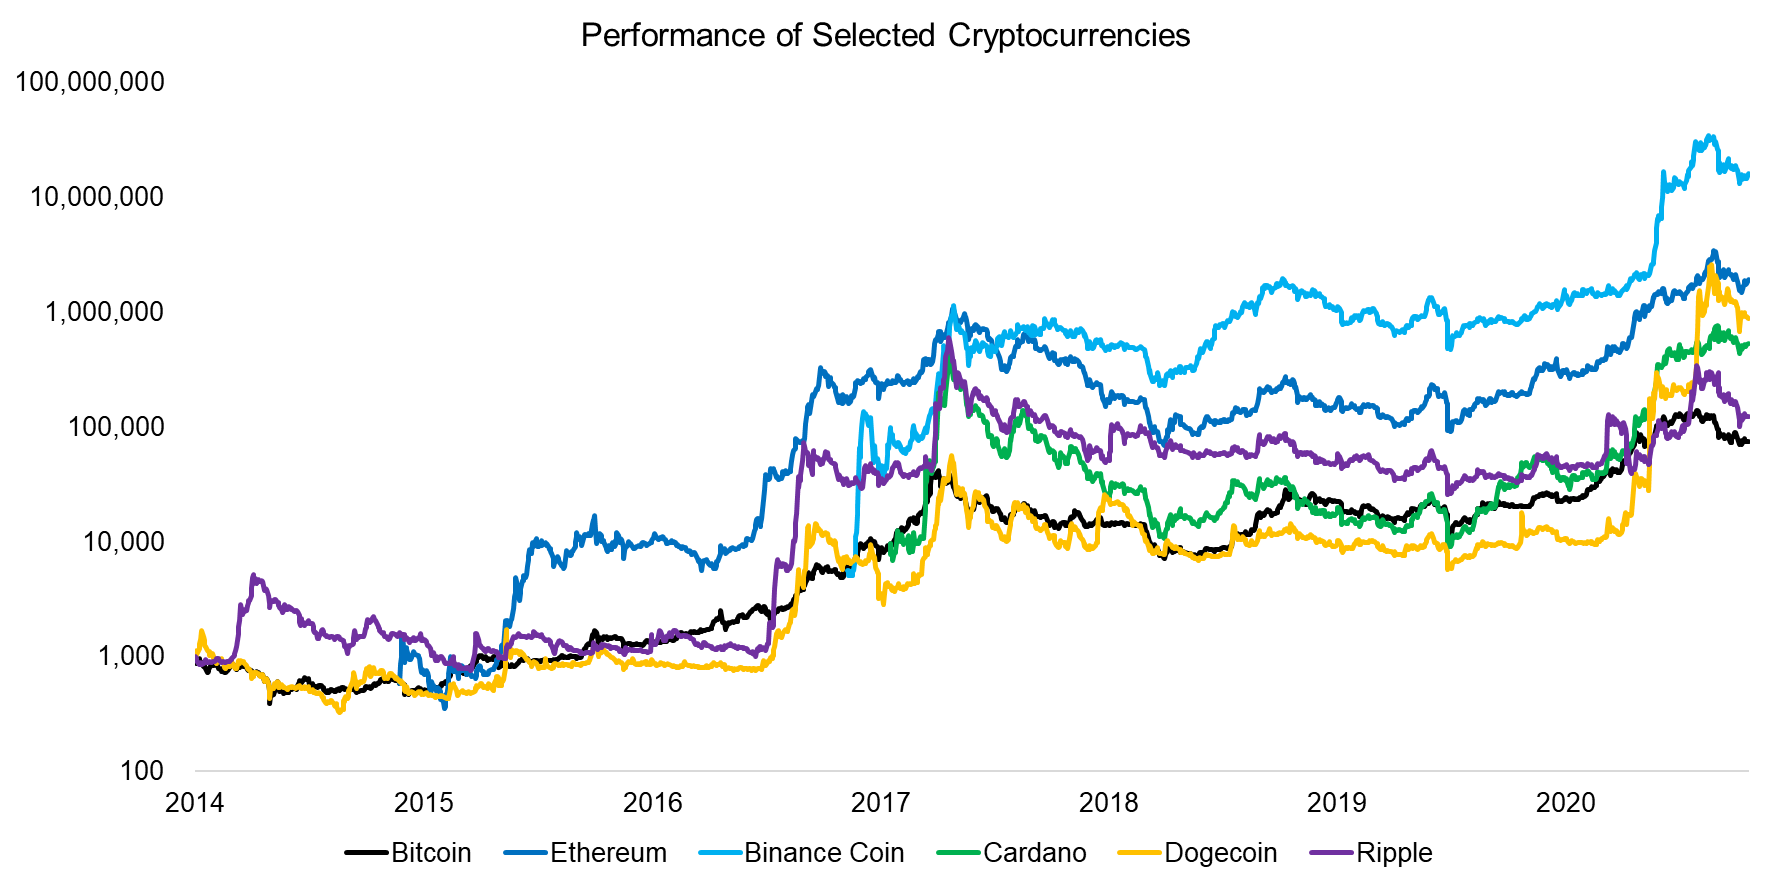 Performance of Selected Cryptocurrencies